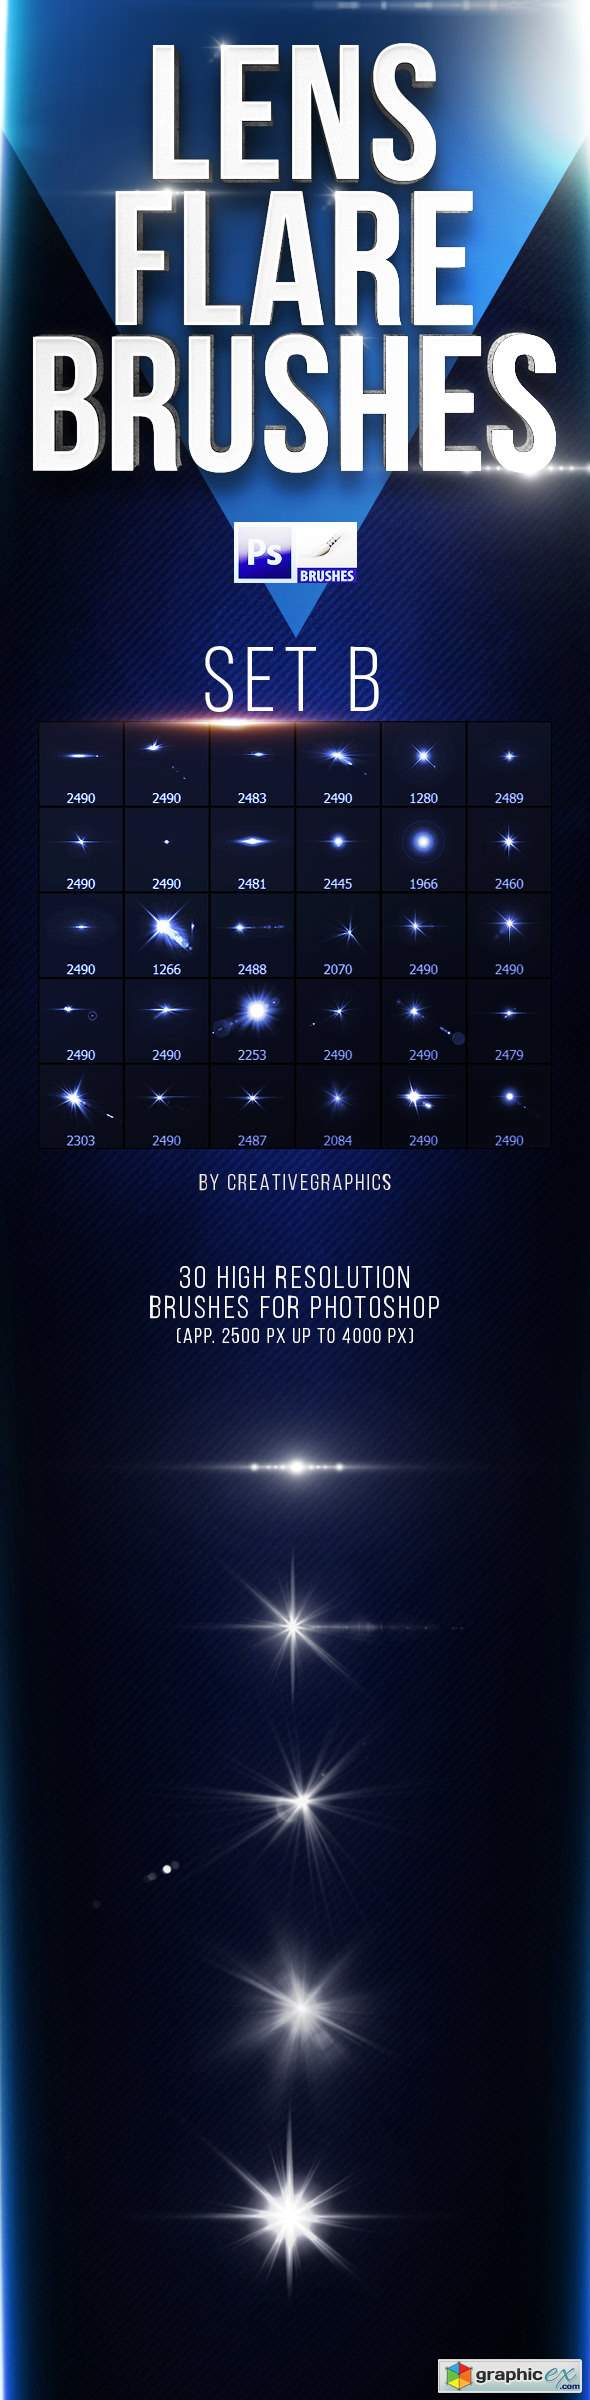 30 Lens Flare Brushes for Photoshop Set B